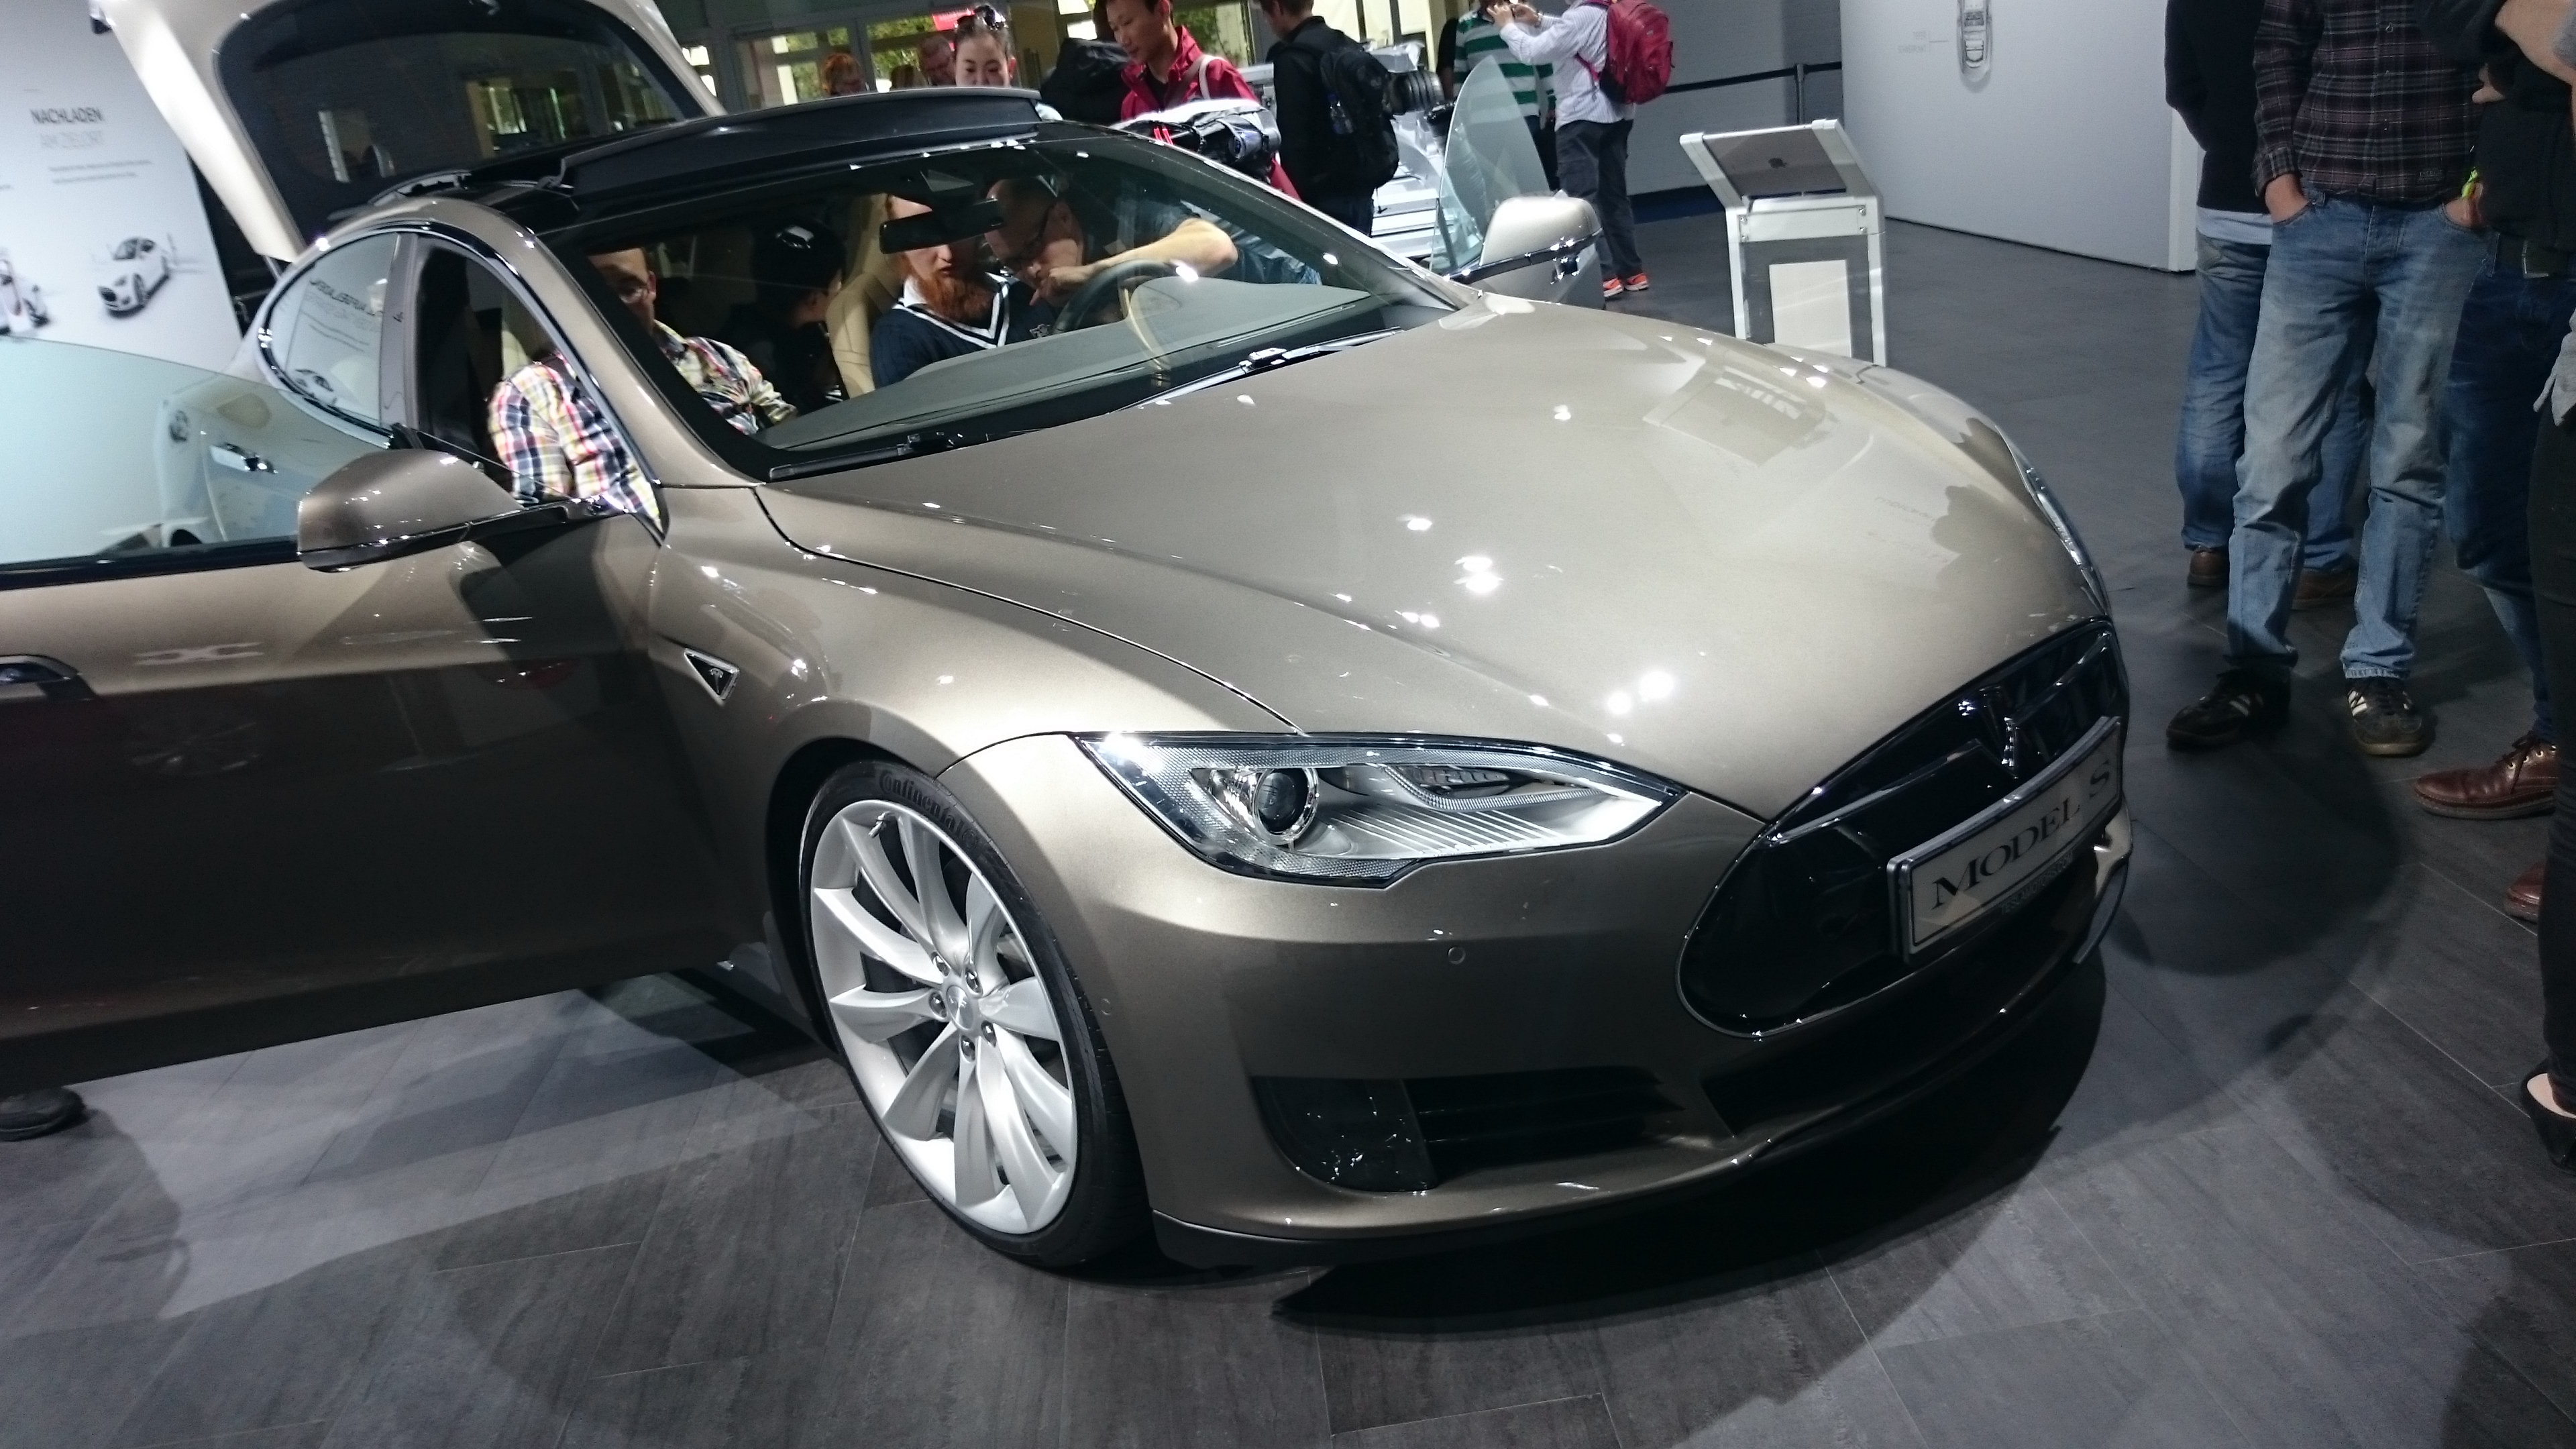 Fotos 360 del Tesla Model S en color bronce #VidePan en #IAA2015